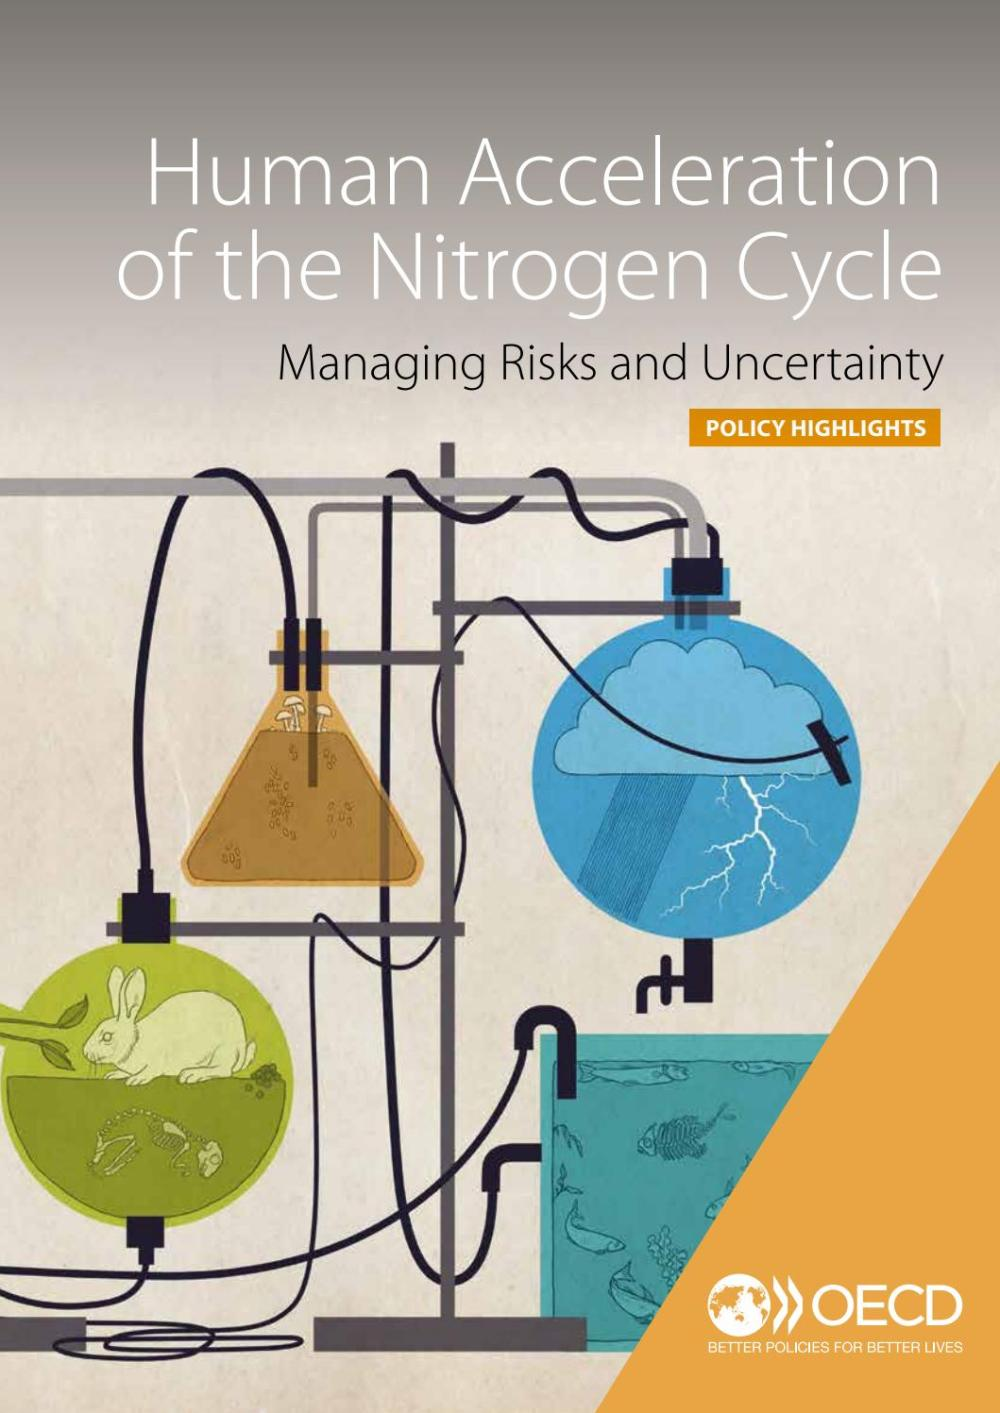 medium resolution of policy highlights human acceleration of the nitrogen cycle managing risks and uncertainty by oecd issuu